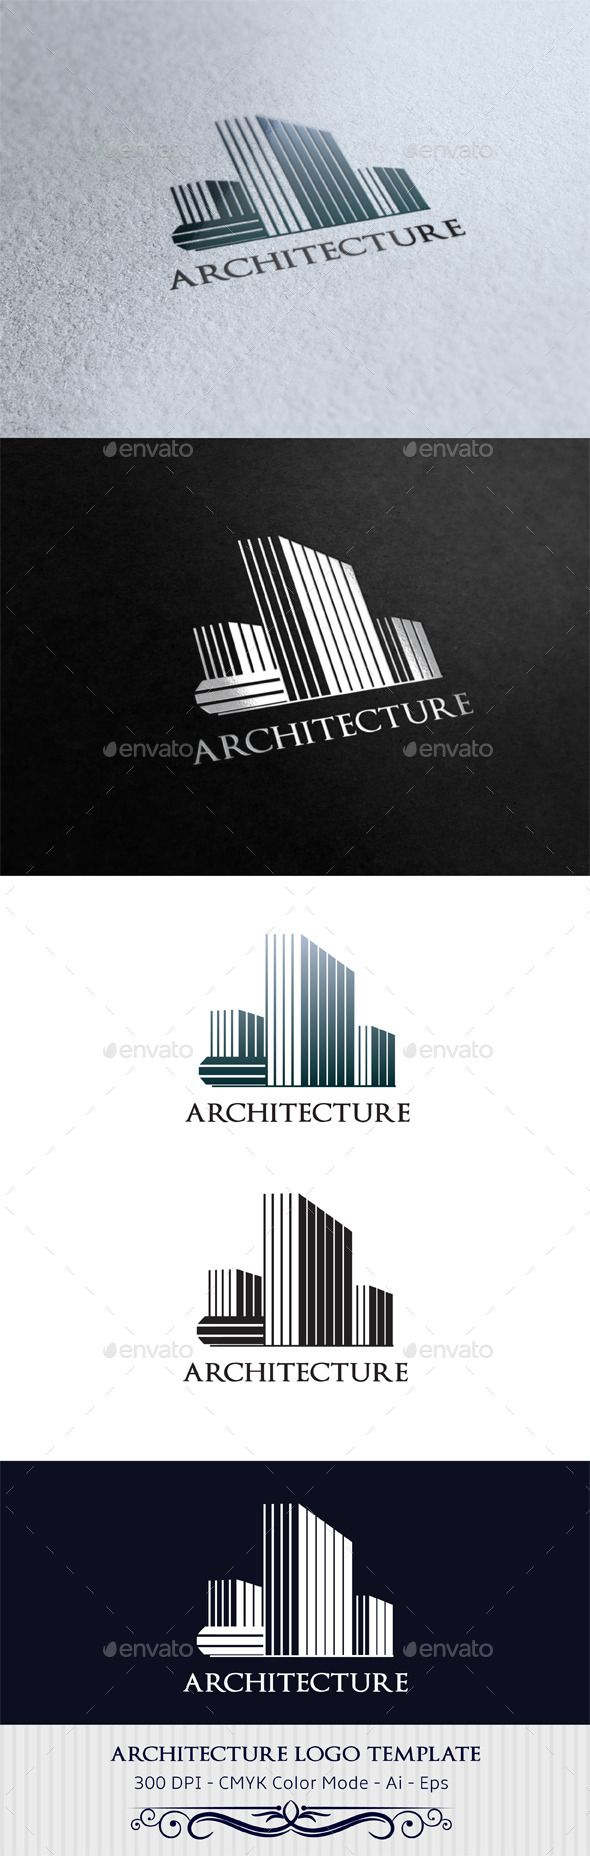 Architecture Logo Design Template Vector #logotype Download it here:  http://graphicriver.net/item/architecture-logo-template/9459964?s_rank=1159?ref=nexion